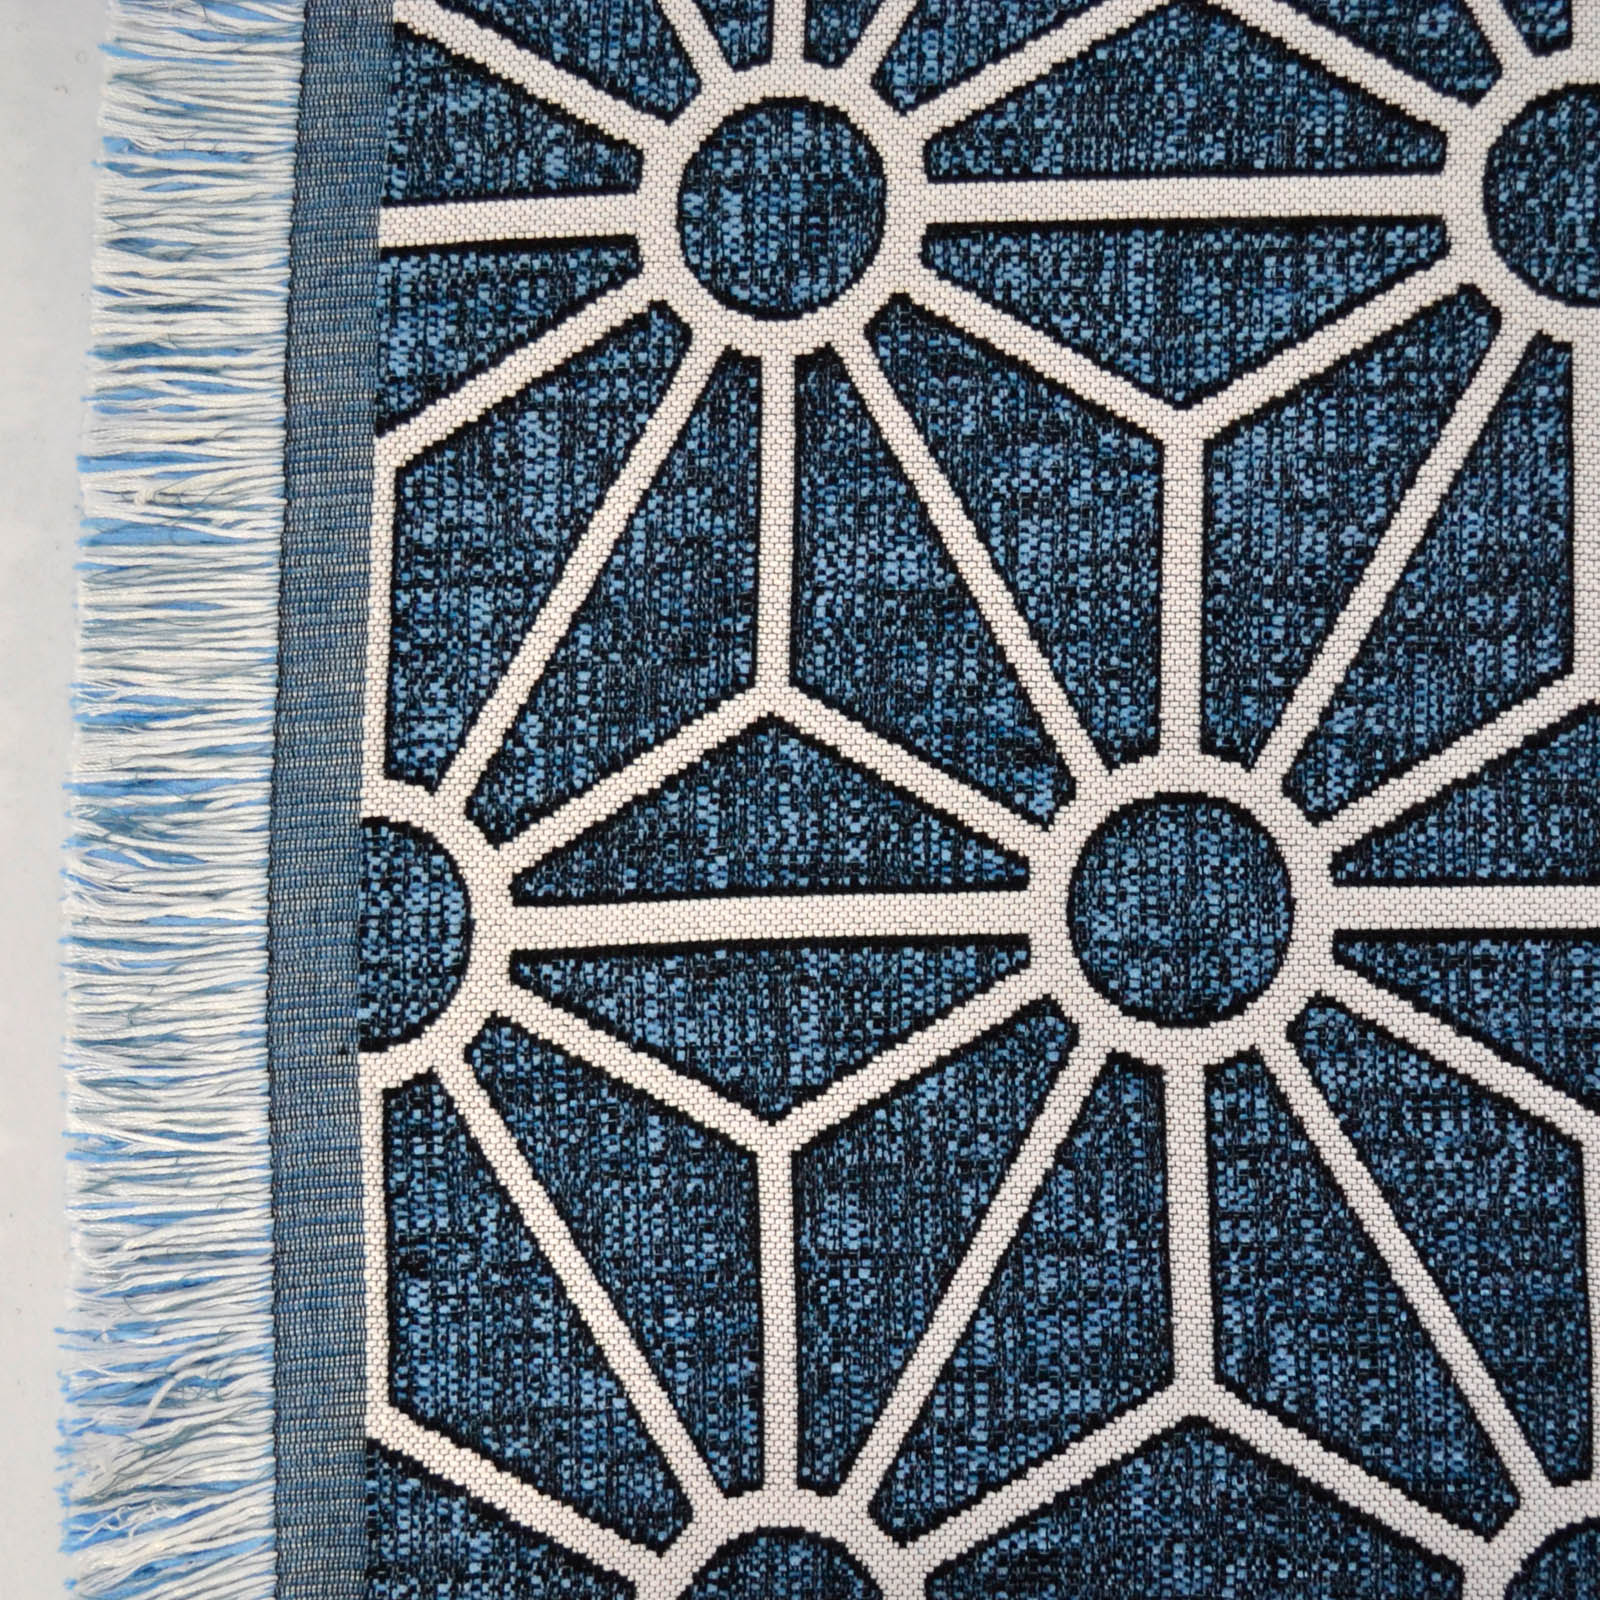 Milek Setisa Rugs DBL5 6001 in Blue and White